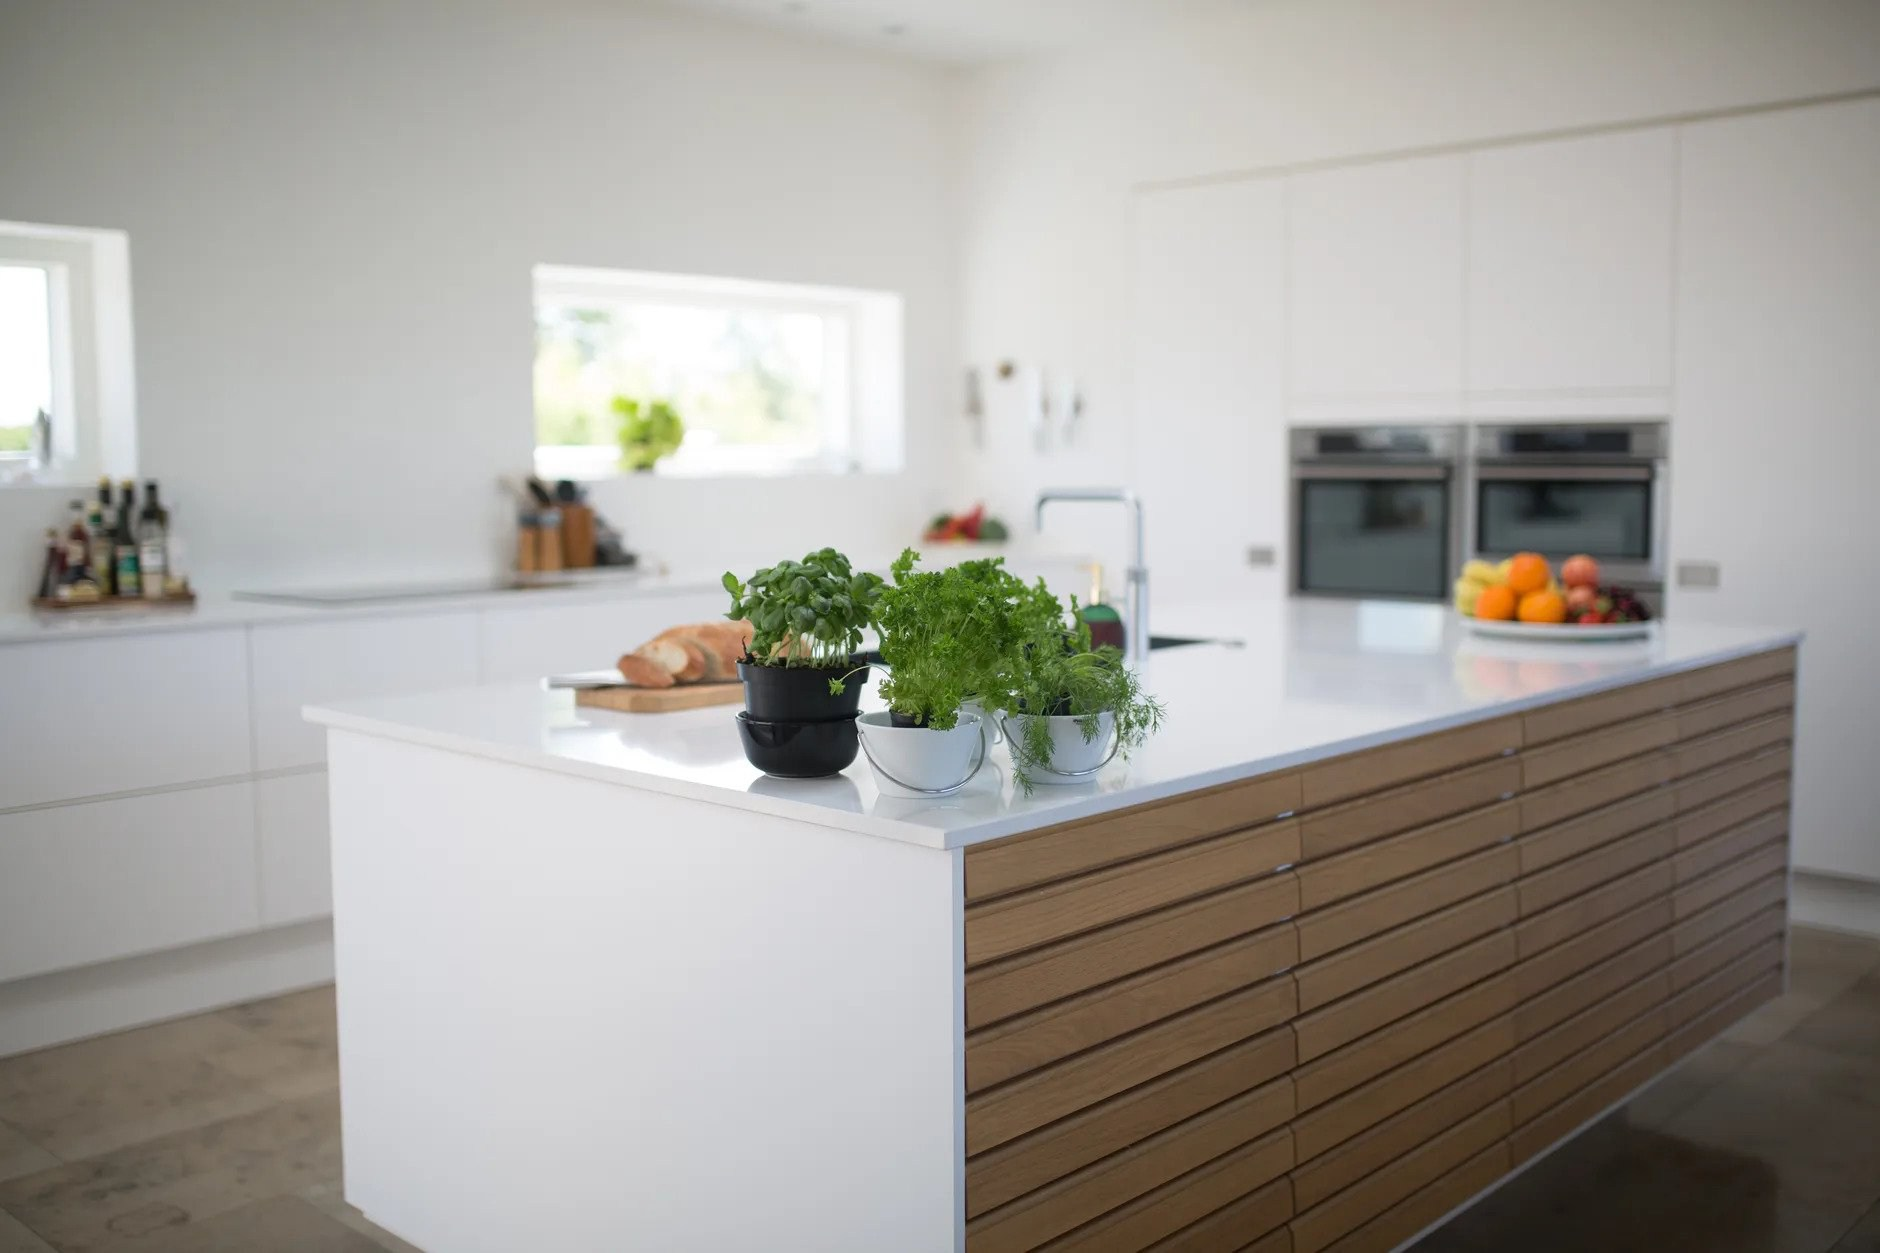 32. Kitchen Countertop With Homemade Herbs